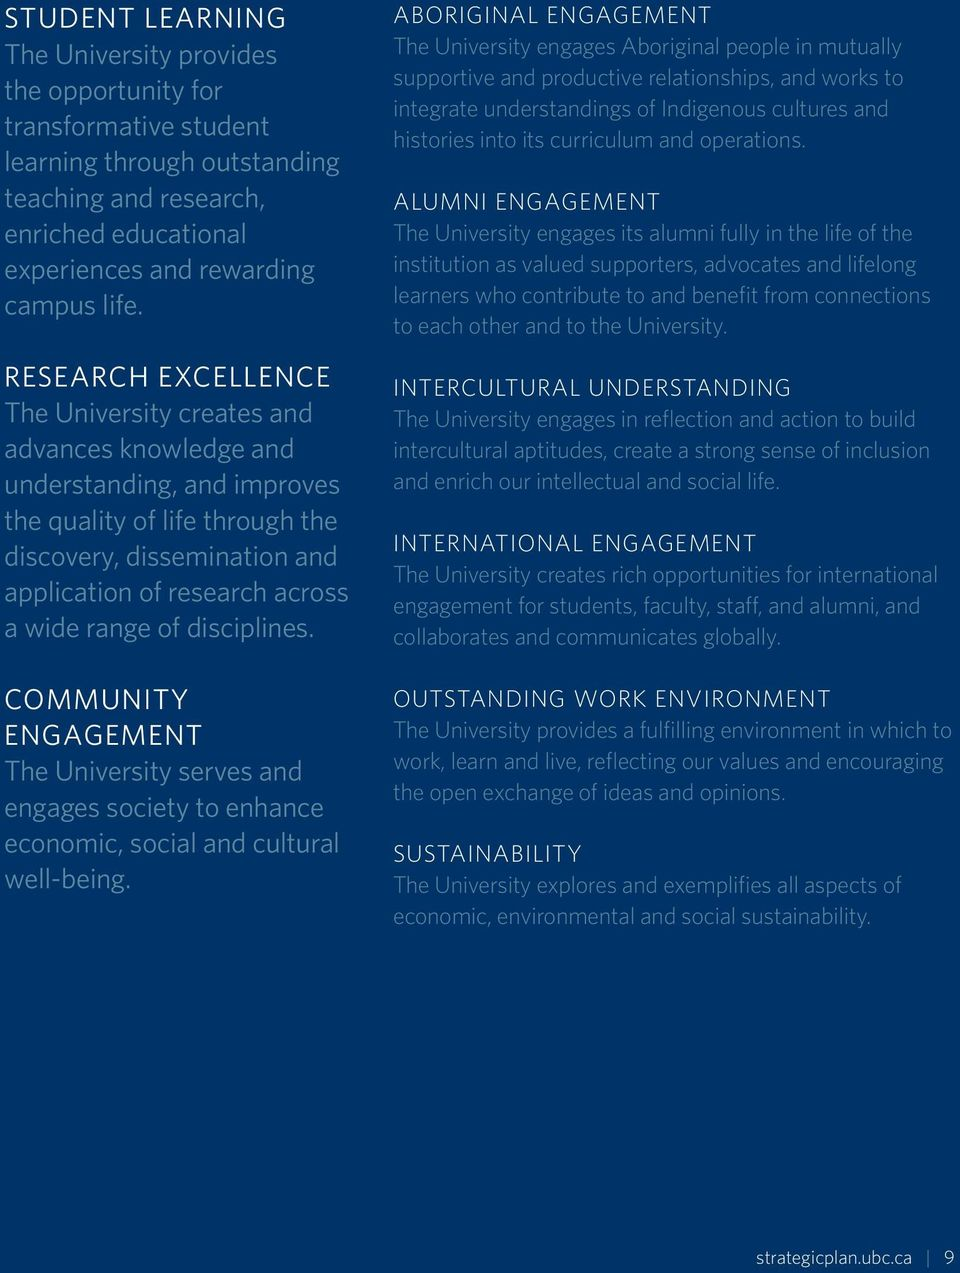 range of disciplines. COMMUNITY ENGAGEMENT The University serves and engages society to enhance economic, social and cultural well-being.